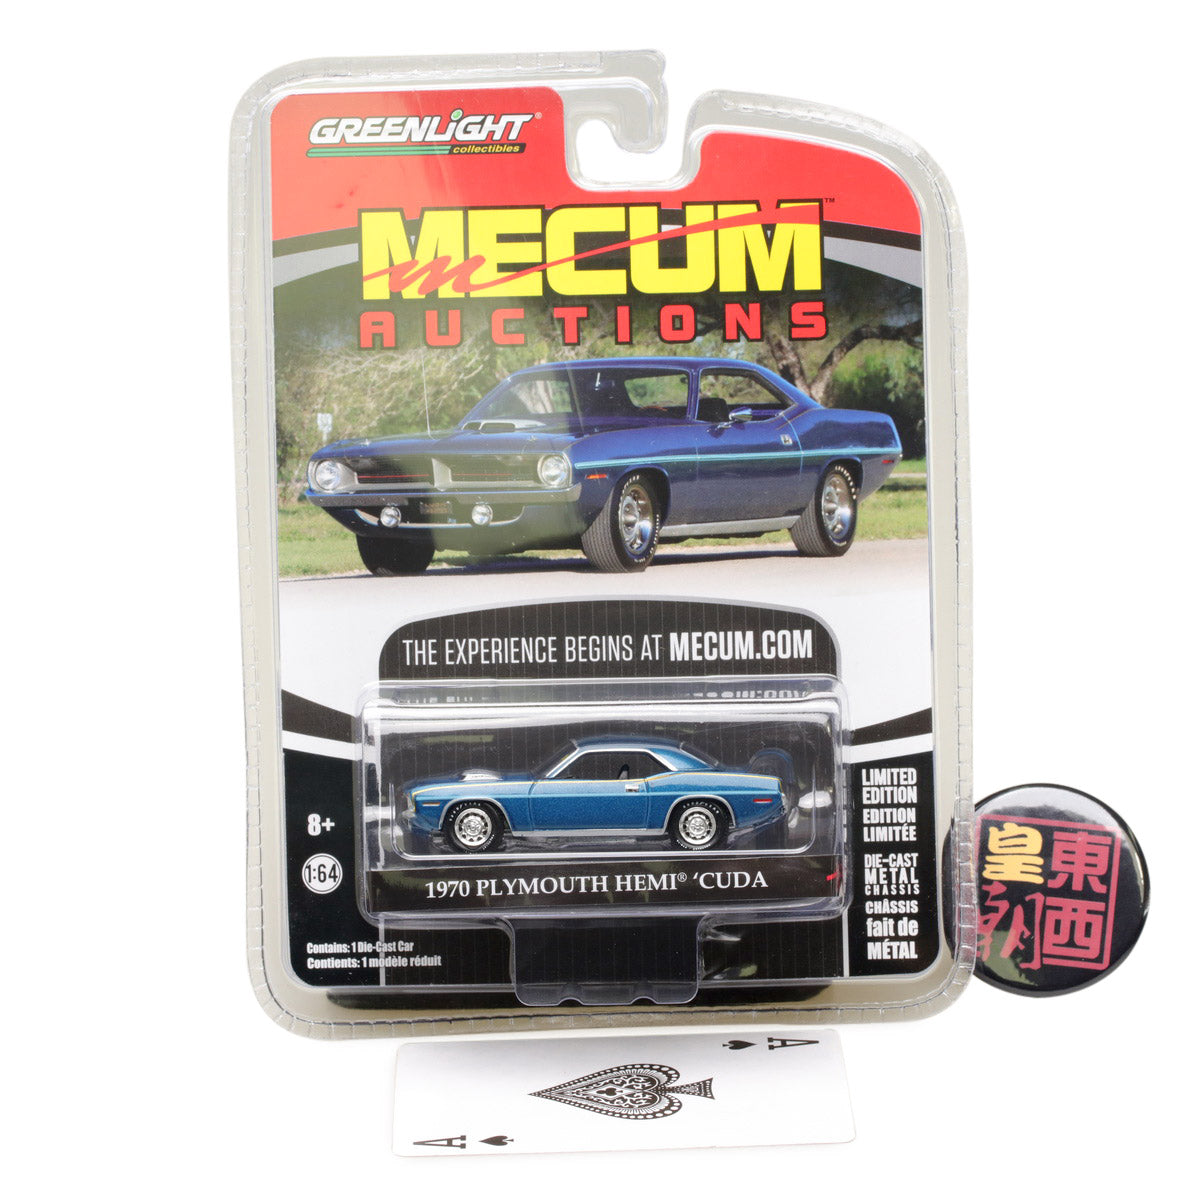 GreenLight 1:64 Mecum Auctions Collector Cars Series 1 - 1970 Plymouth HEMI Cuda - Jamaica Blue Diecast Model Car 37110-D